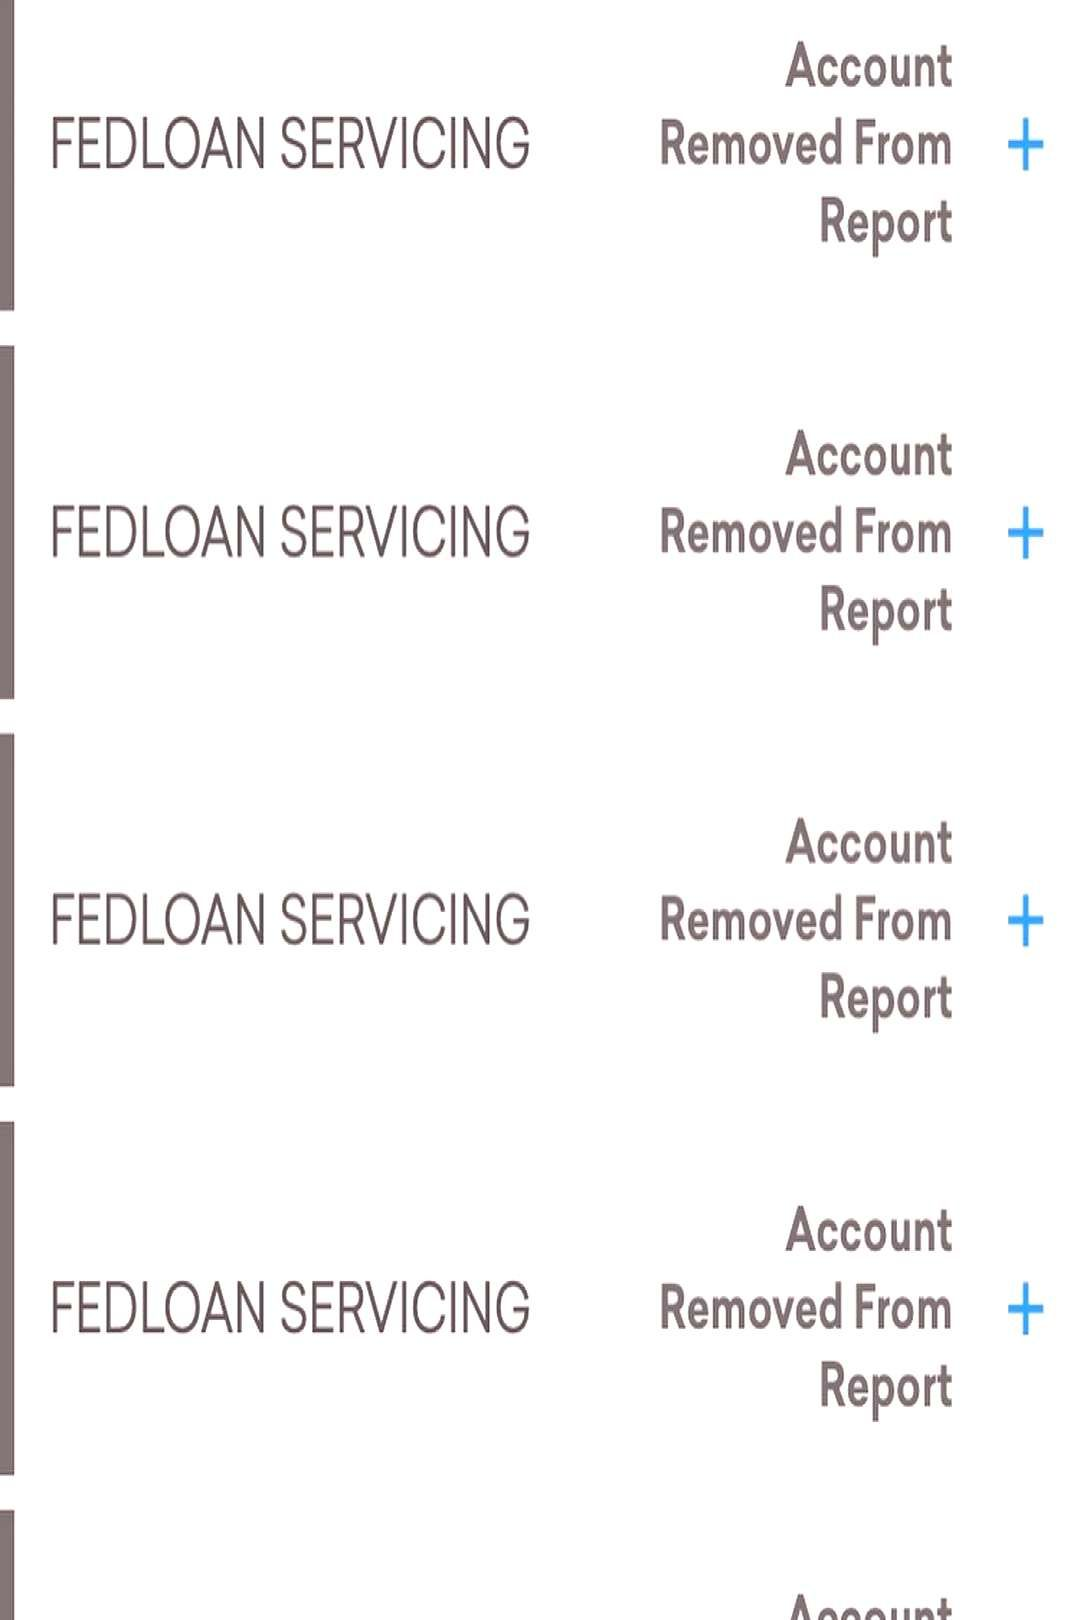 #deletions #servicing #possible #personal #removed #account #fedloan #student #report #needs #auto #text #that #says #loan More student loan deletions who needs an auto loan, personal loanY...